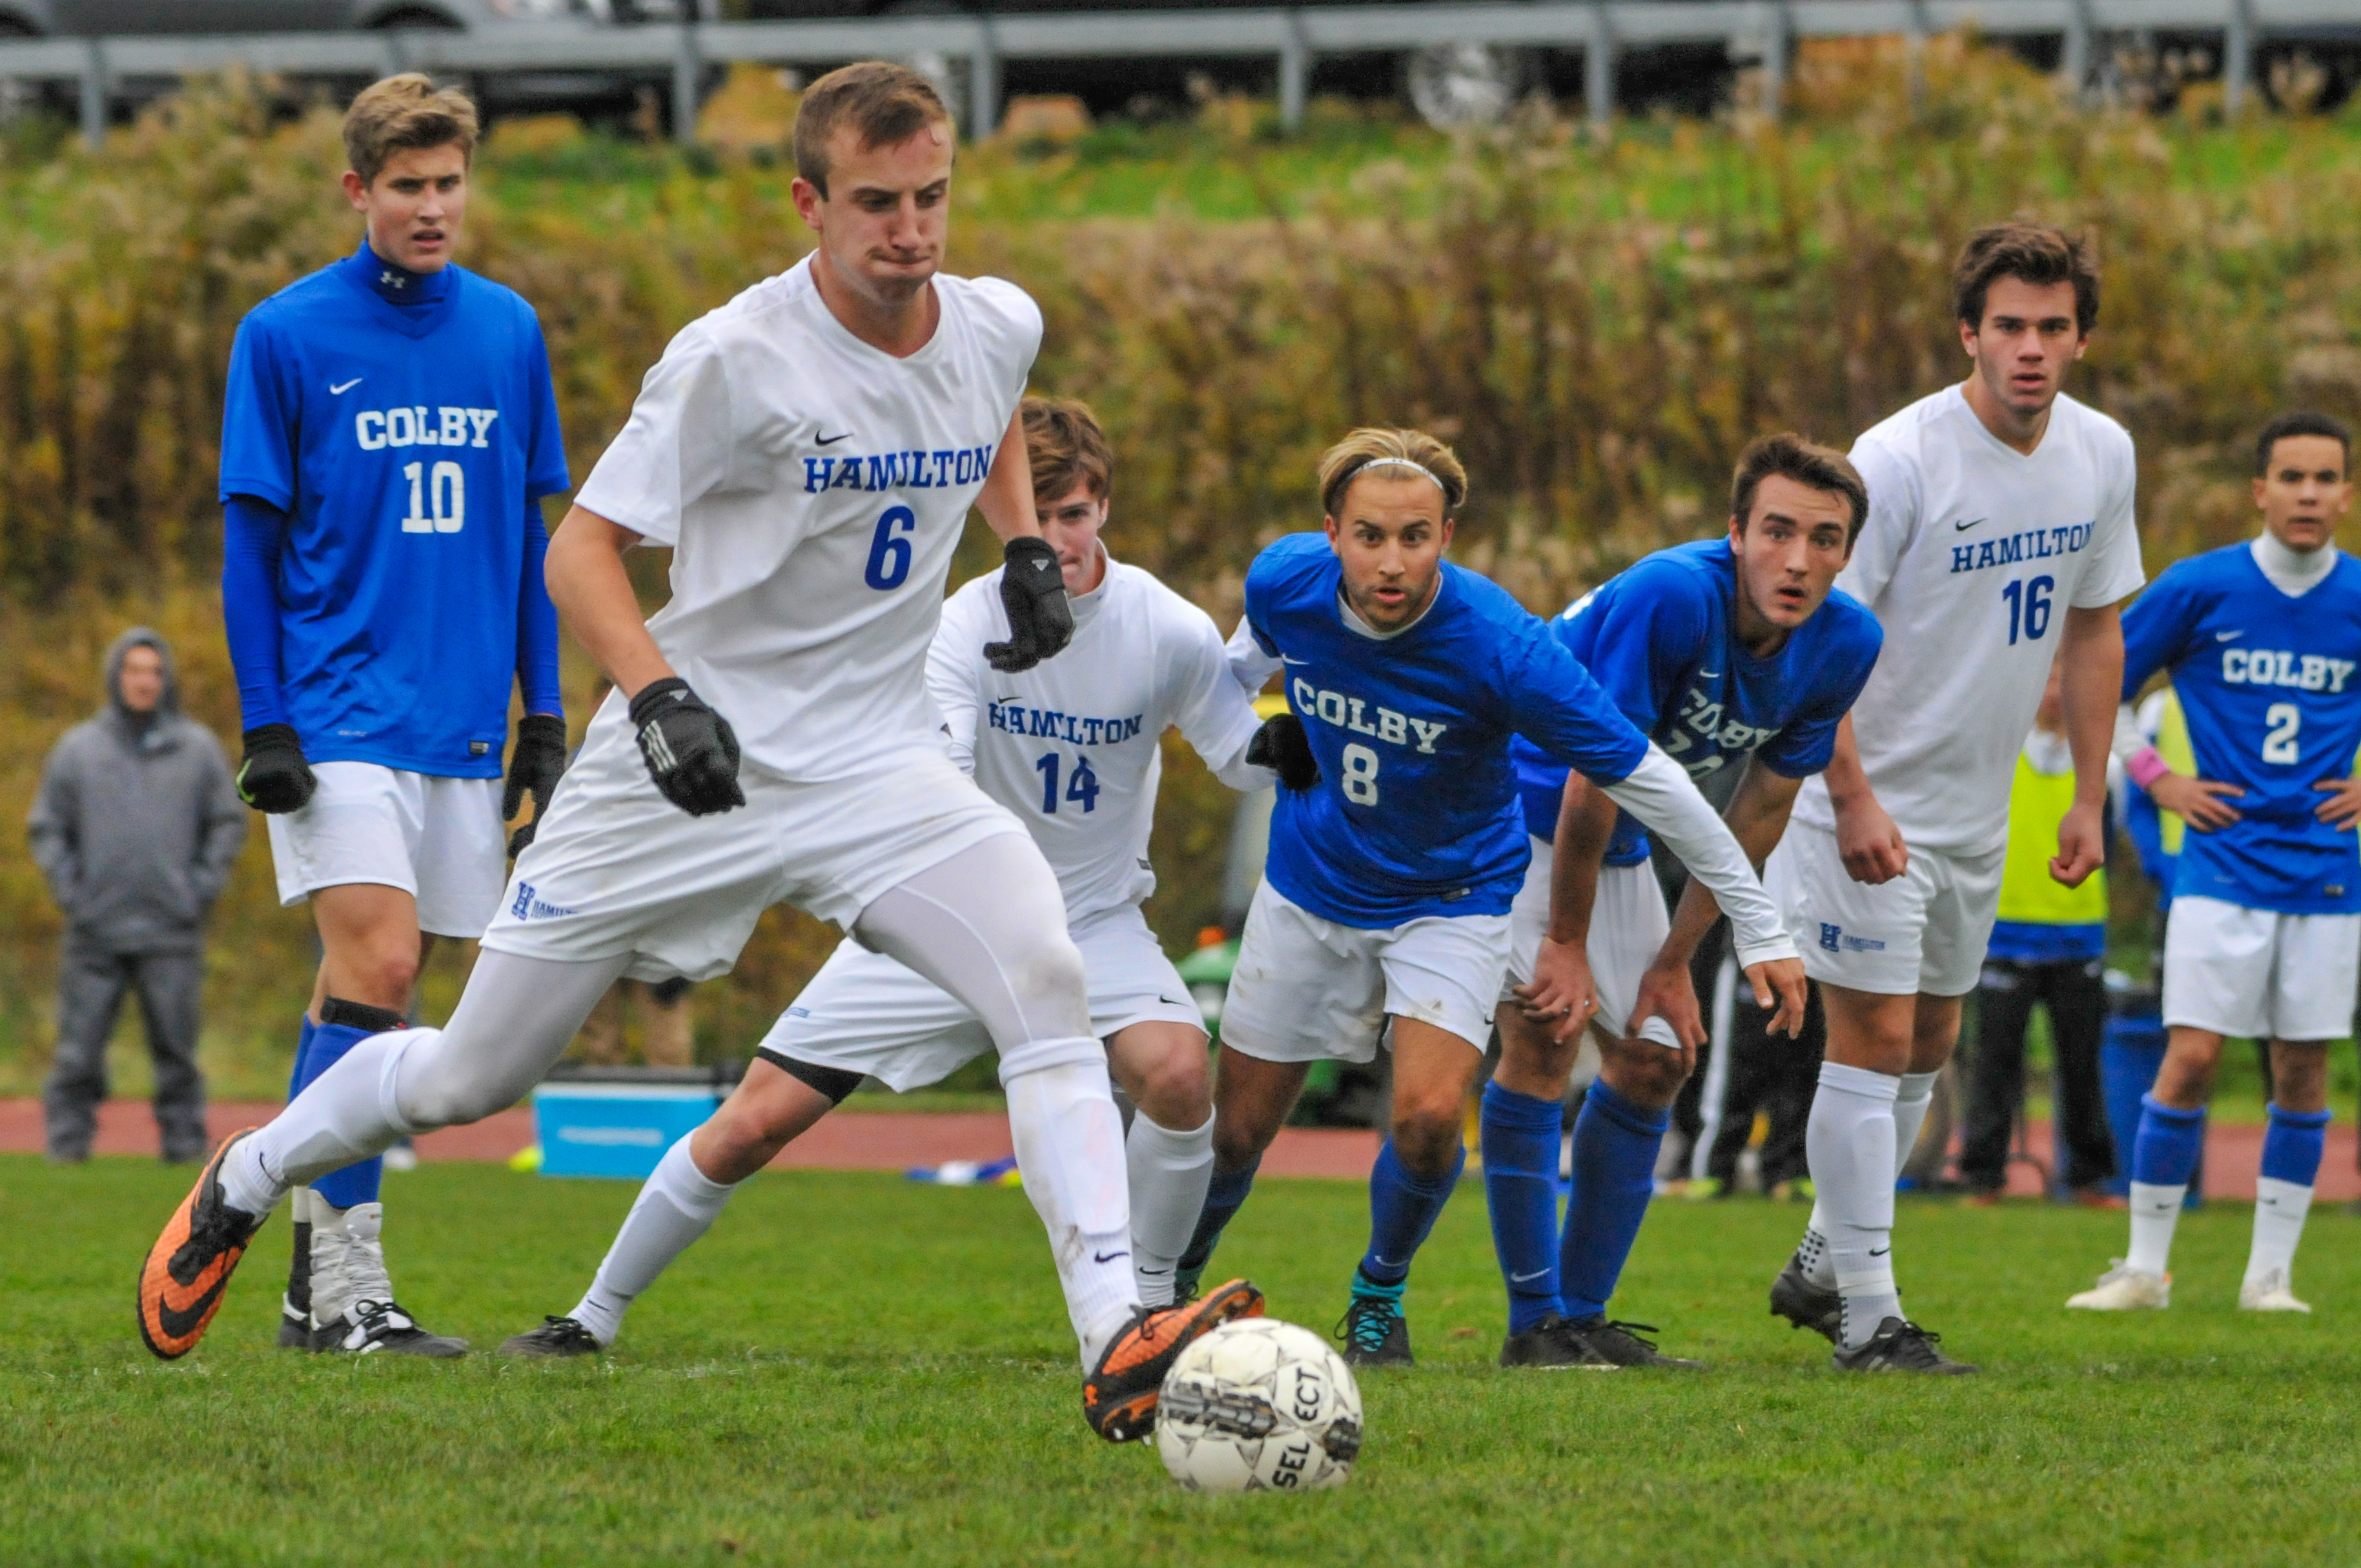 Men S Soccer Honors Seniors And Beats Colby News Hamilton College